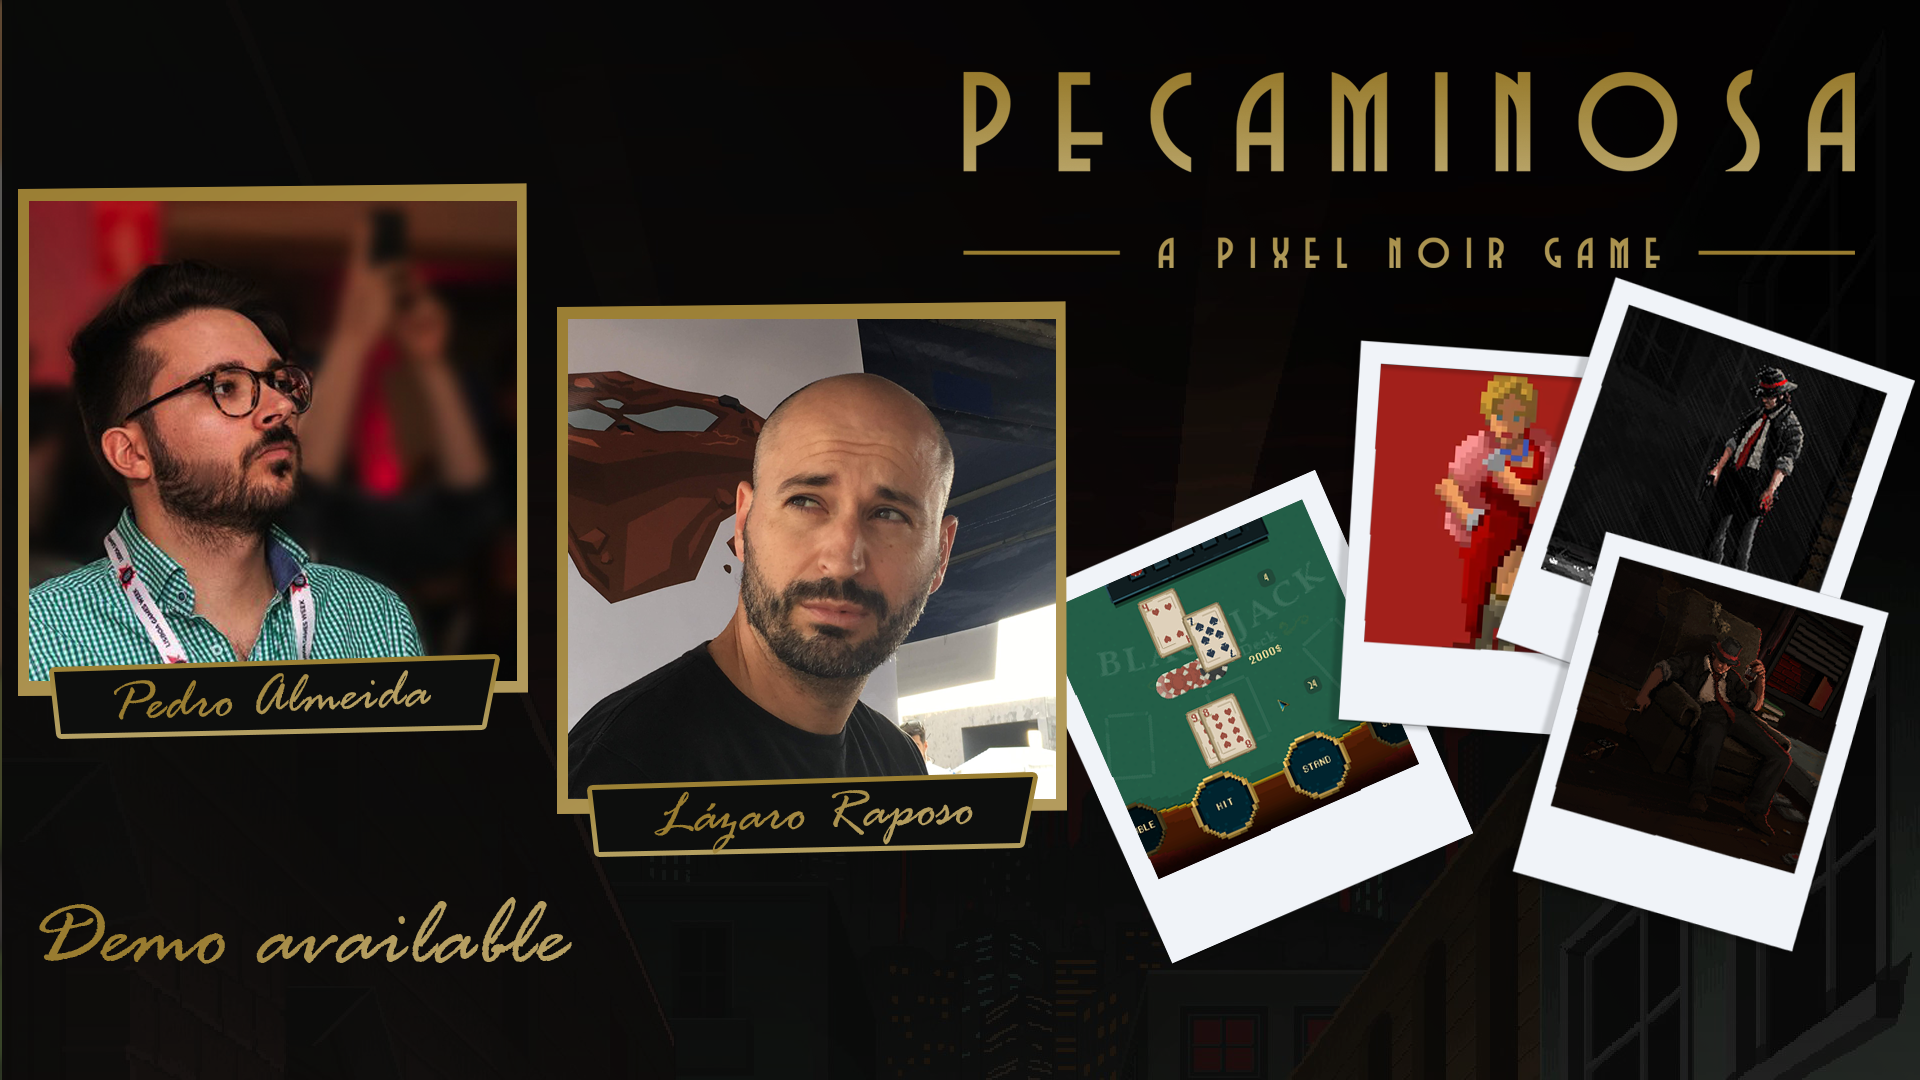 Pecaminosa on Steam Game Festival